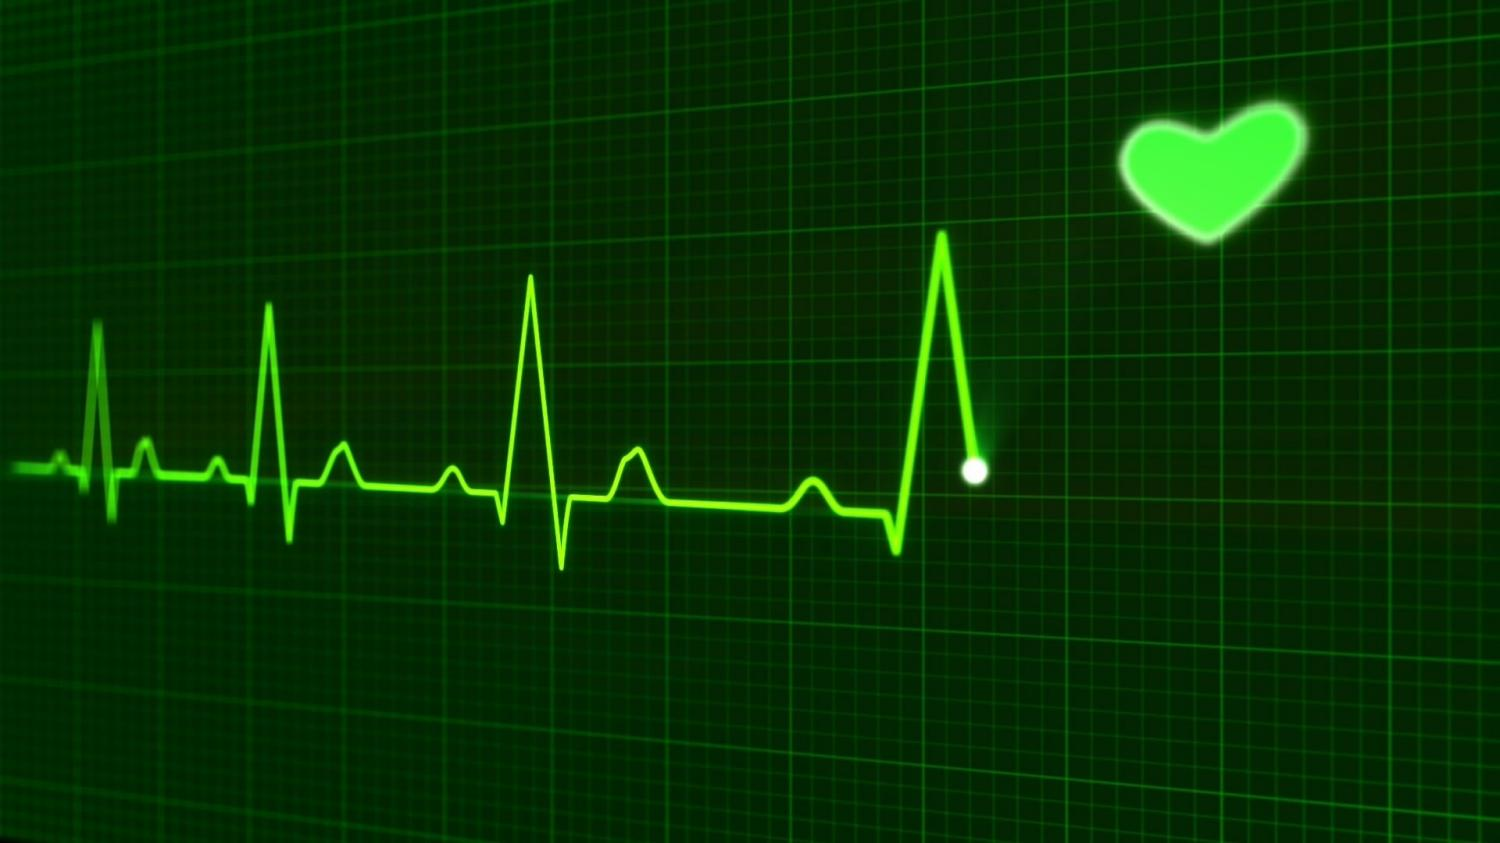 Acting quickly after heart attack symptoms start can be a heart saver